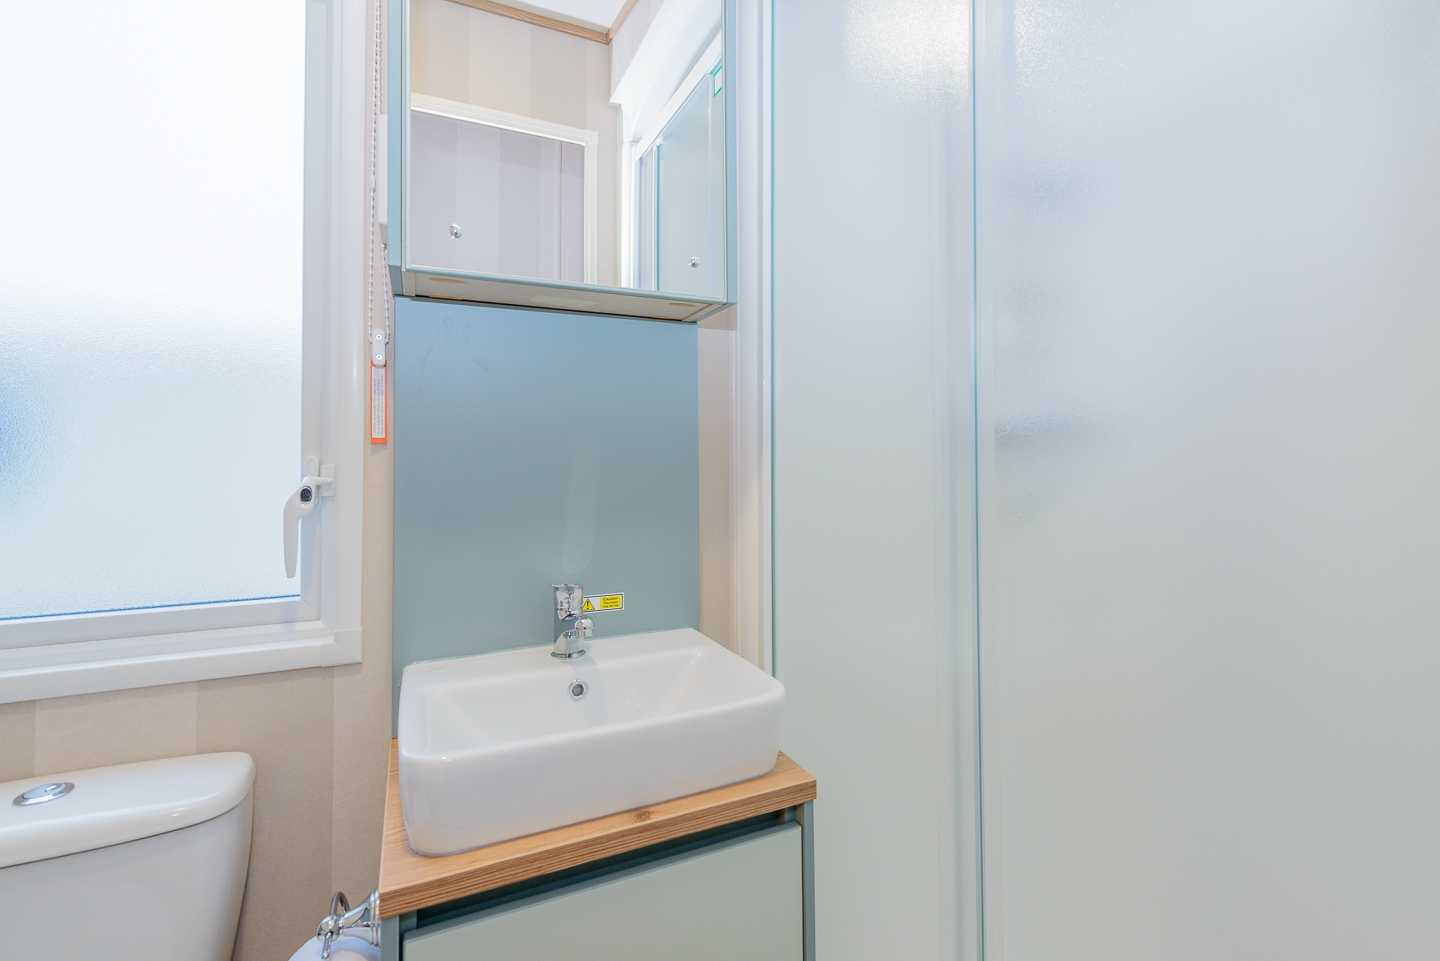 An example of the bathroom in a Prestige caravan